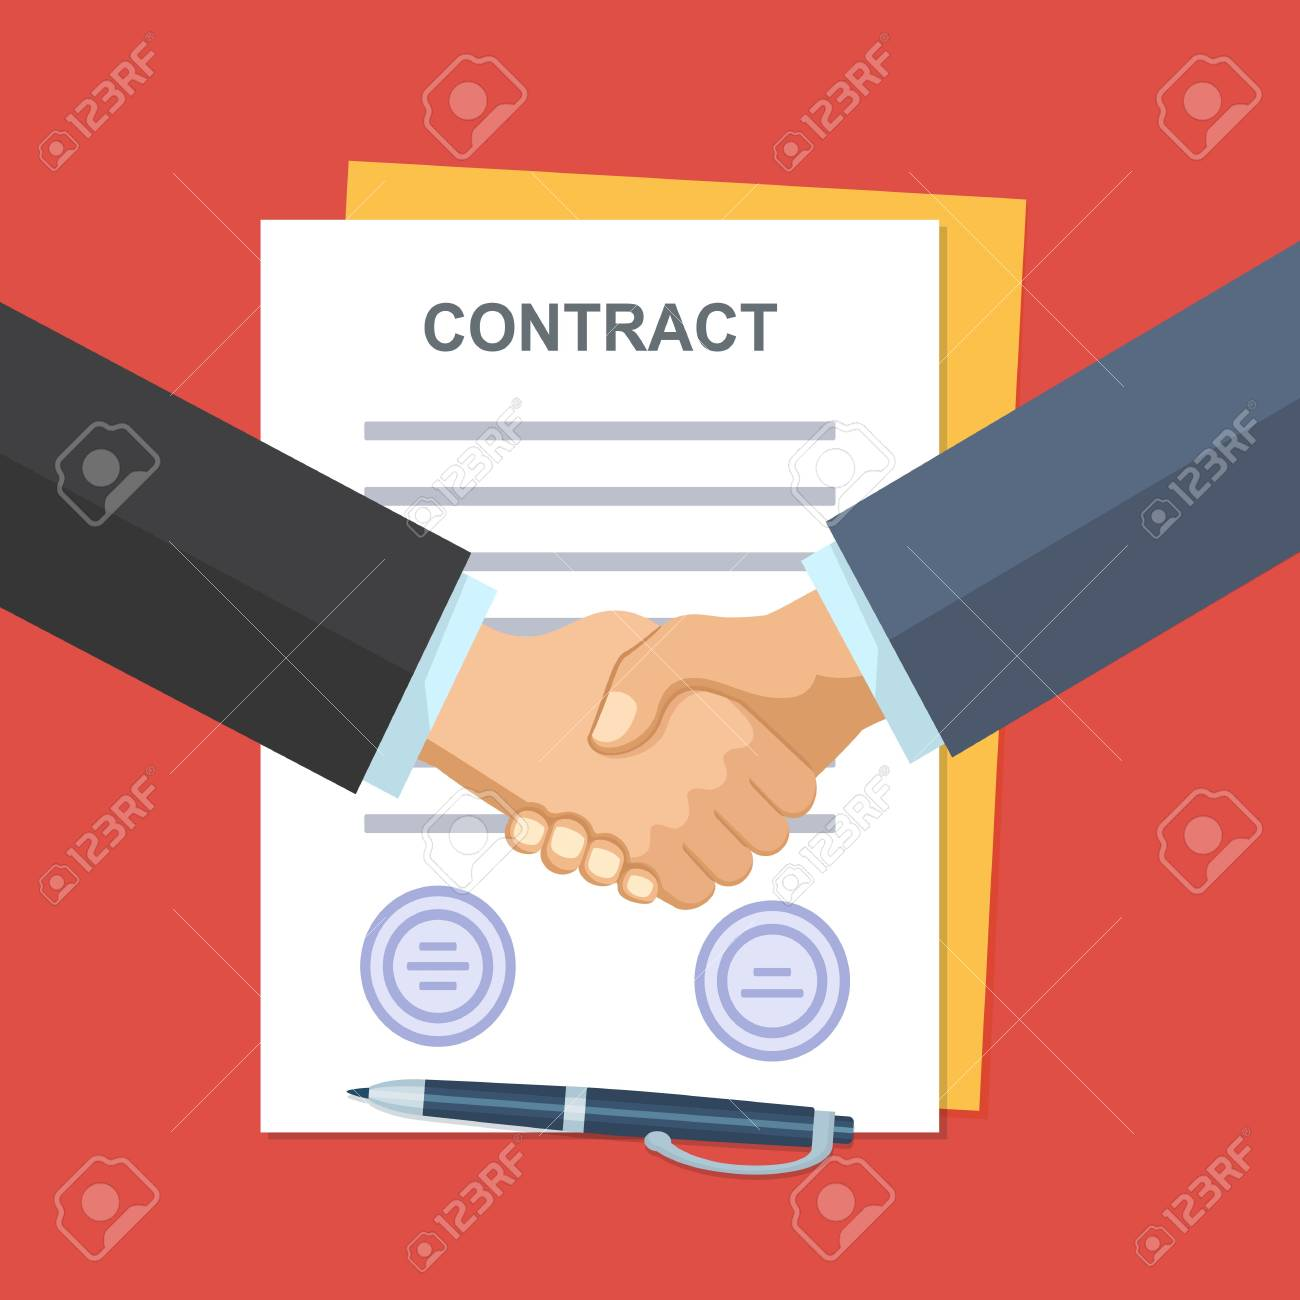 Handshake of business people on the background of the contract. - 110660718